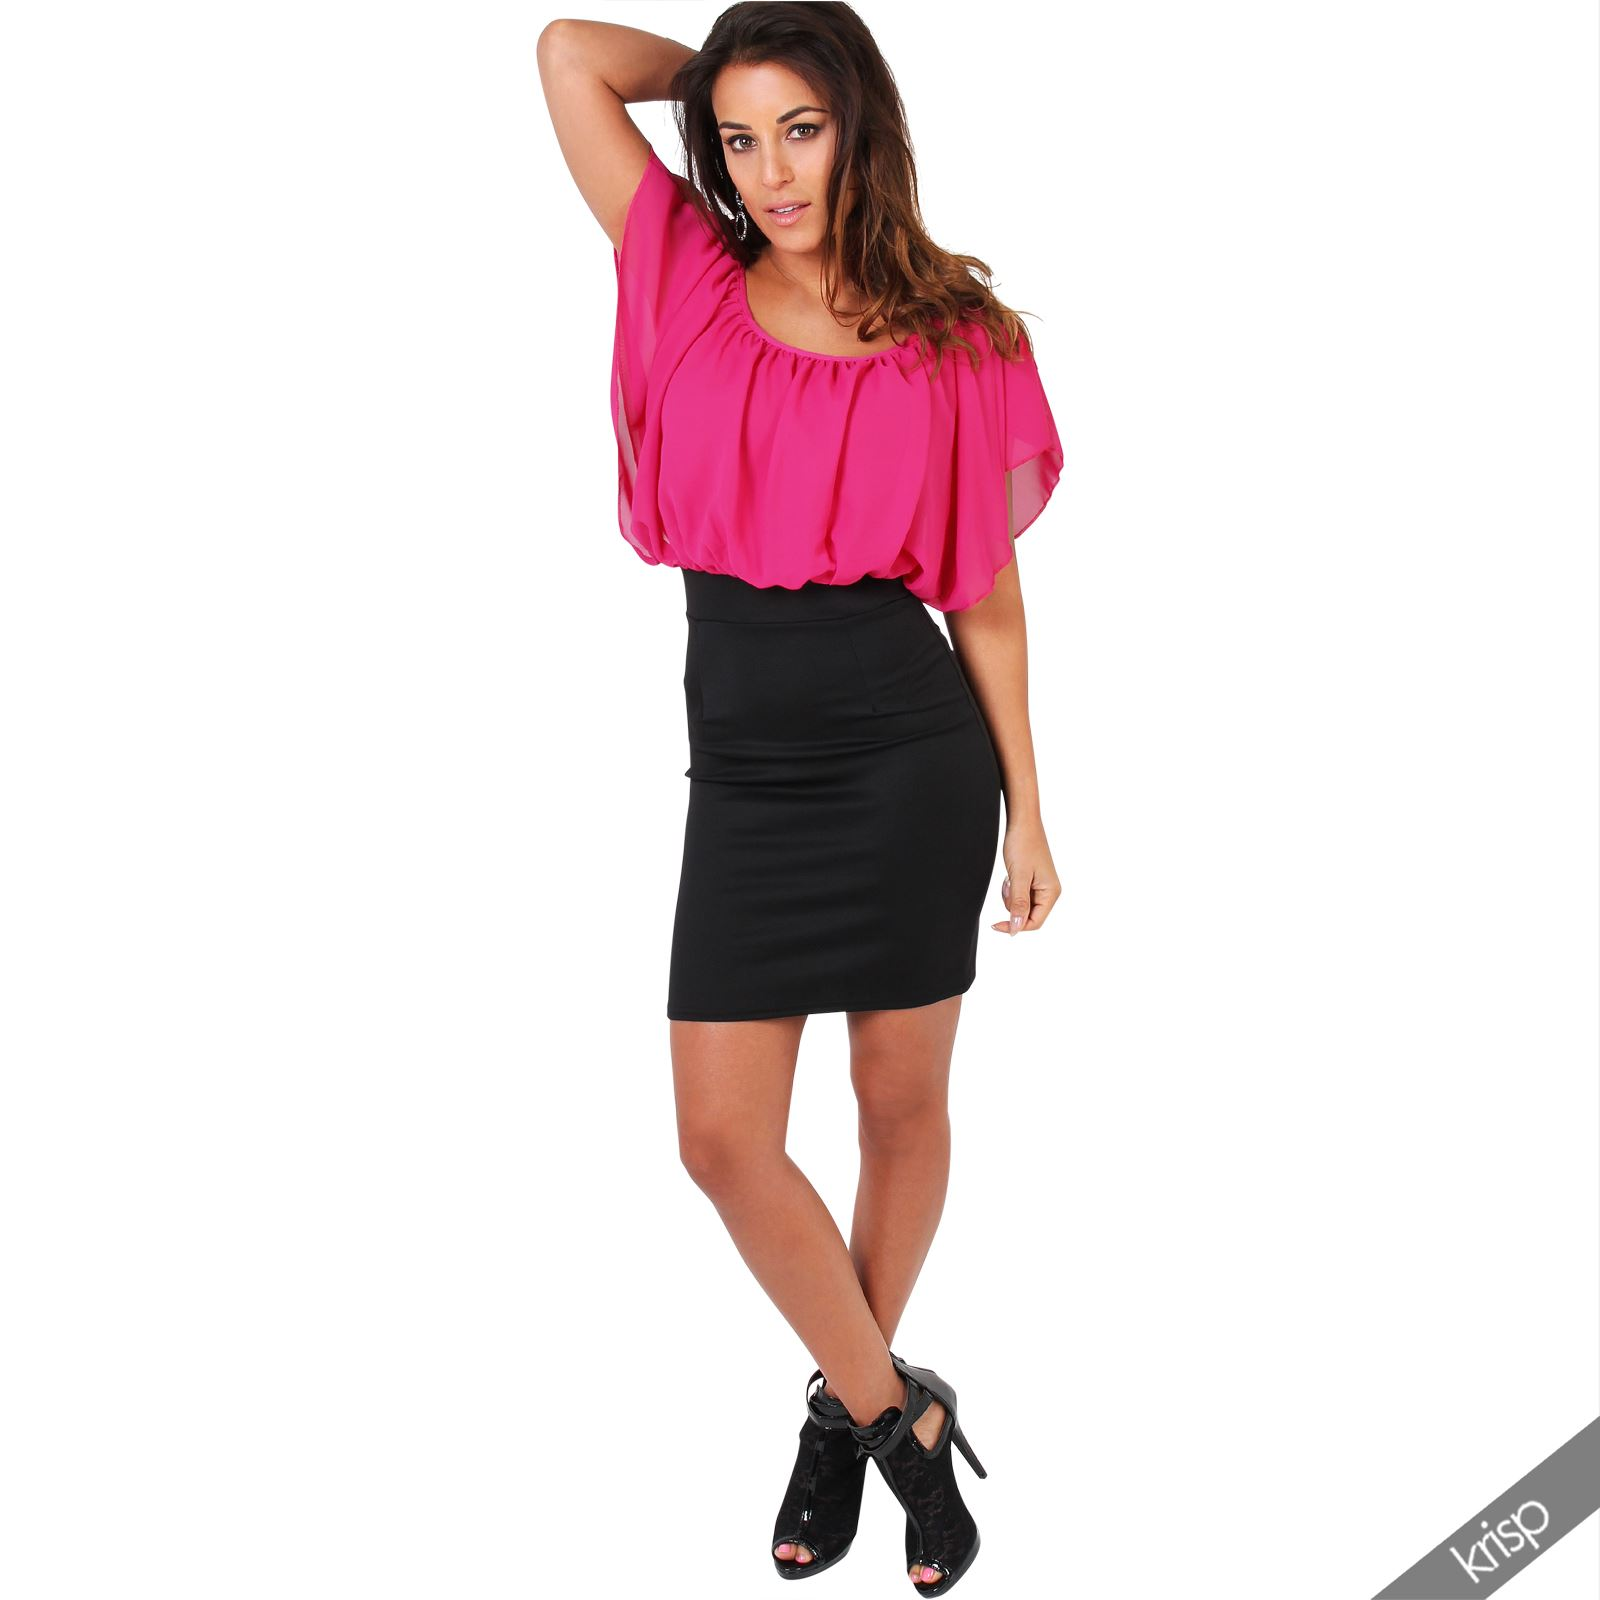 Awesome Formal Female Office Uniform Style Women Suits With Skirt And Blouse